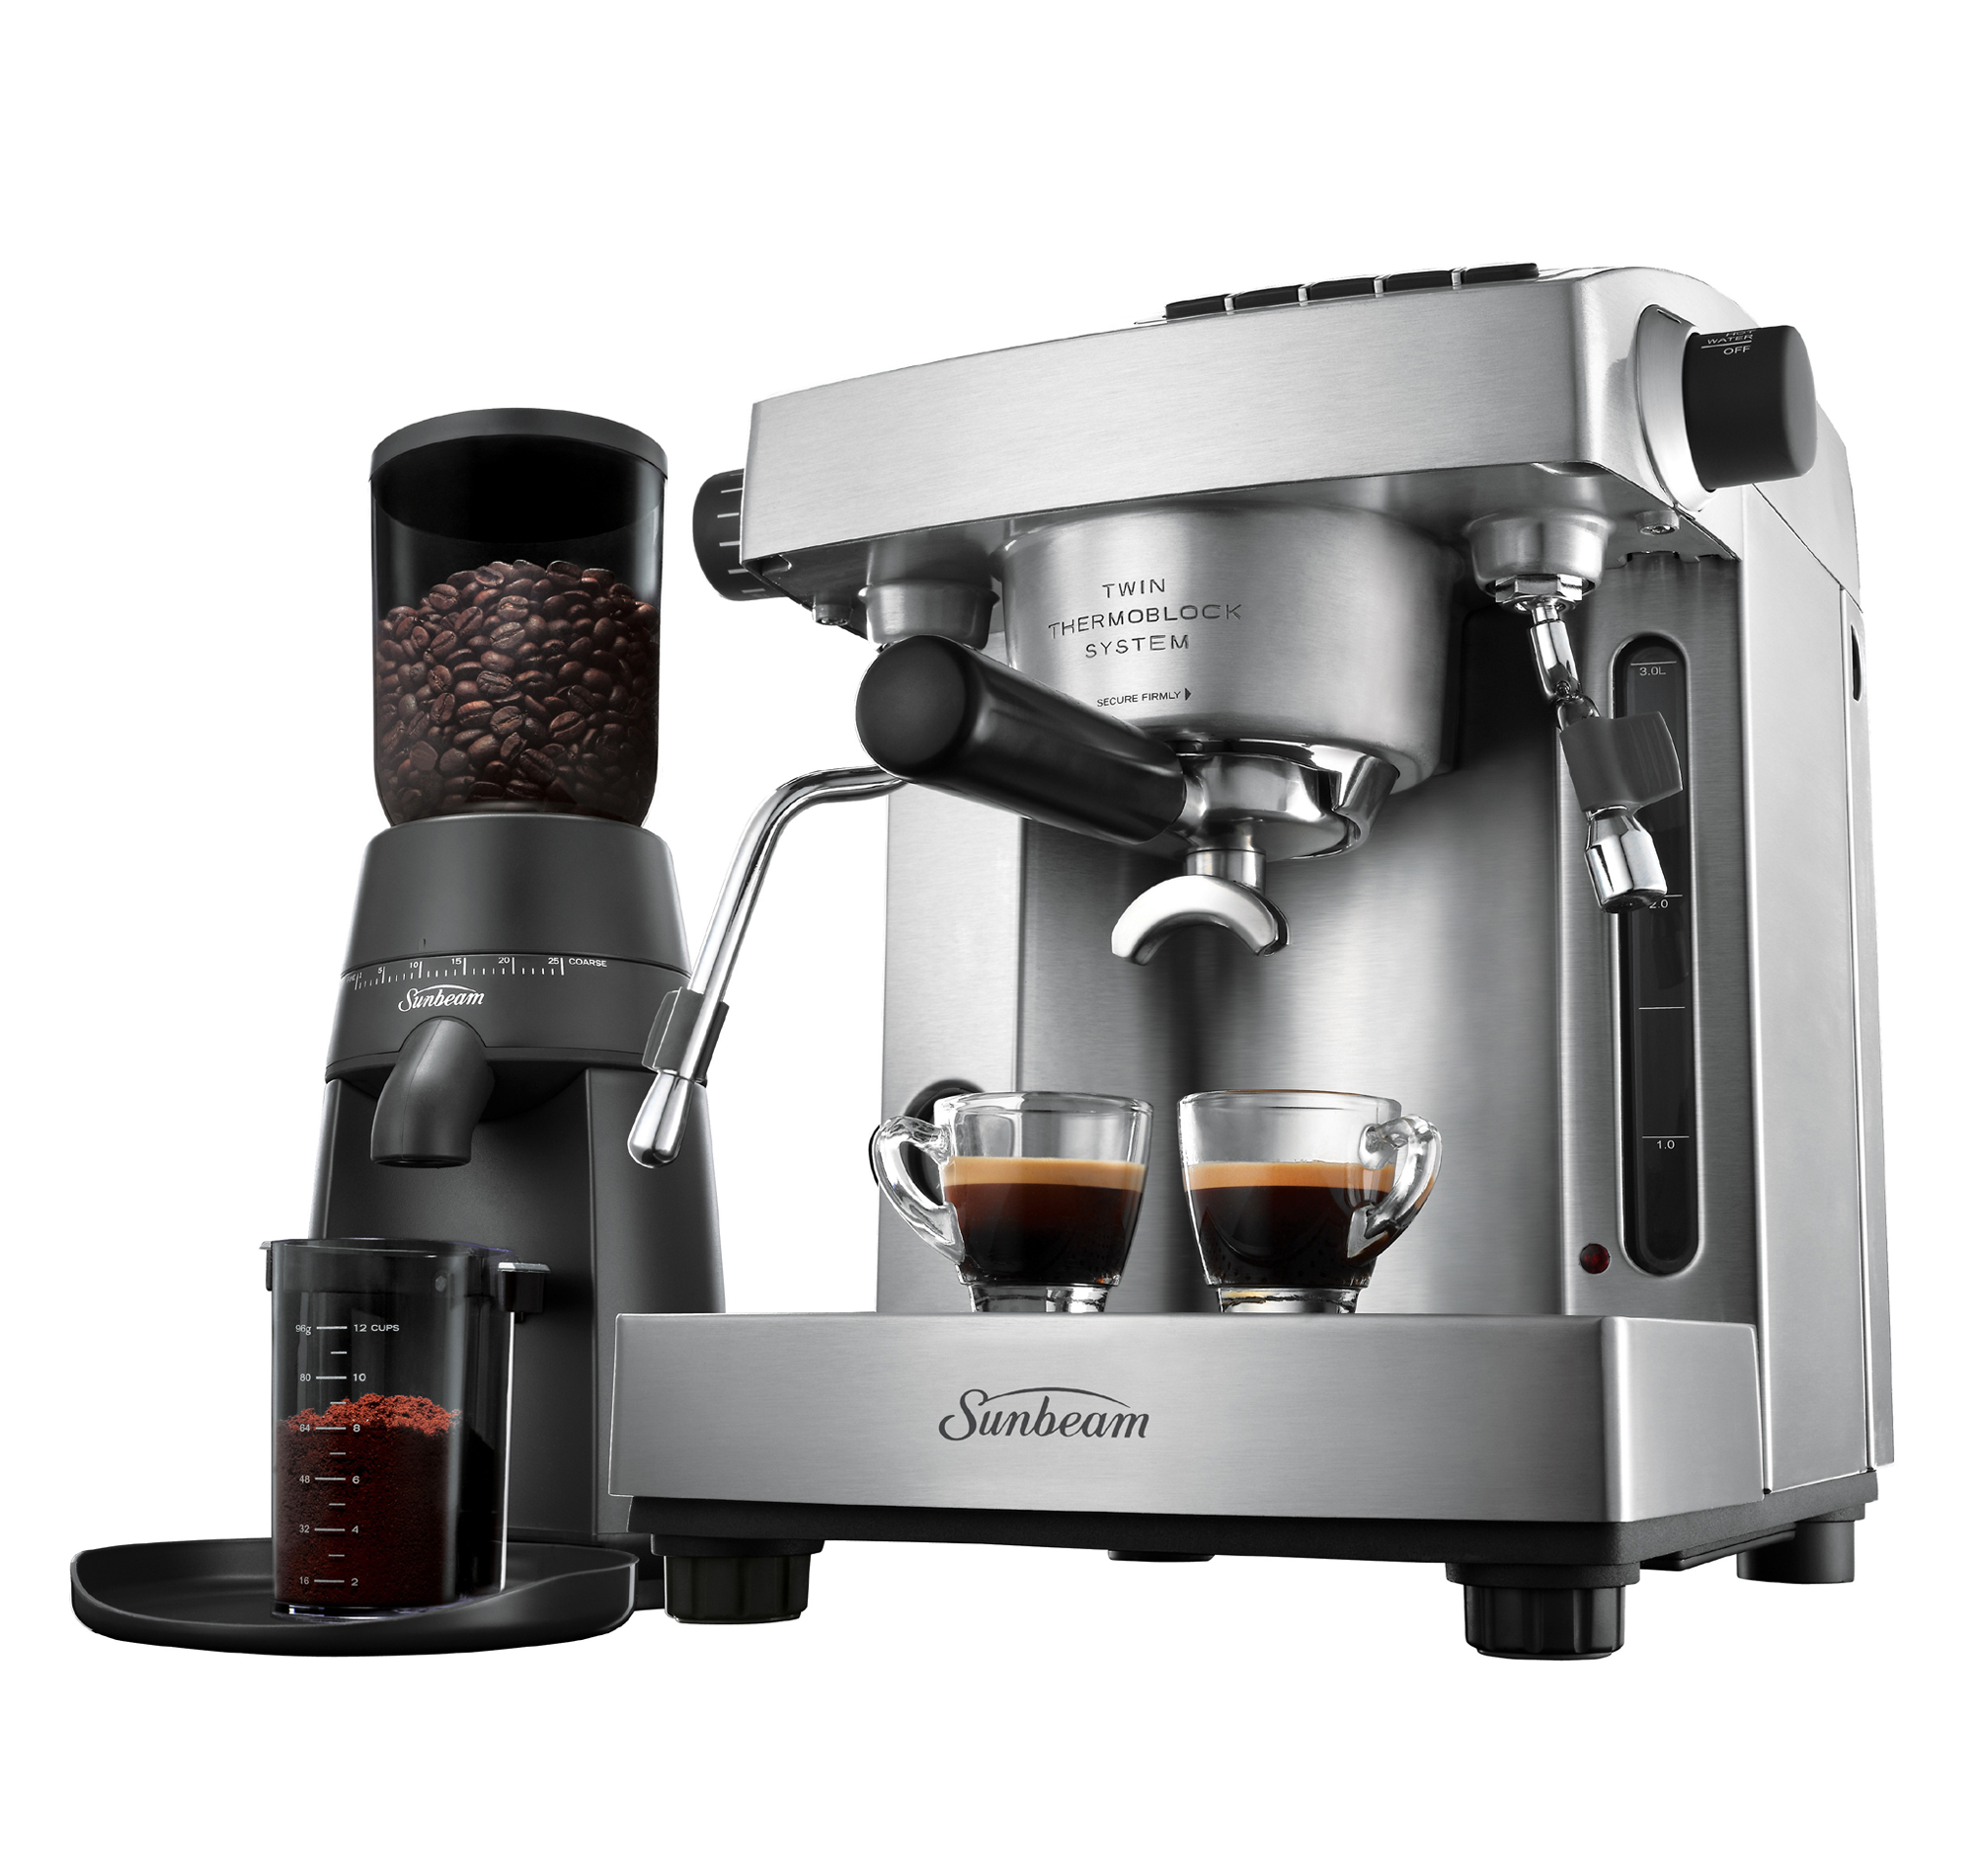 Things To Know About The Reliable Espresso Machine! Here Are The Details That You Need To Know!